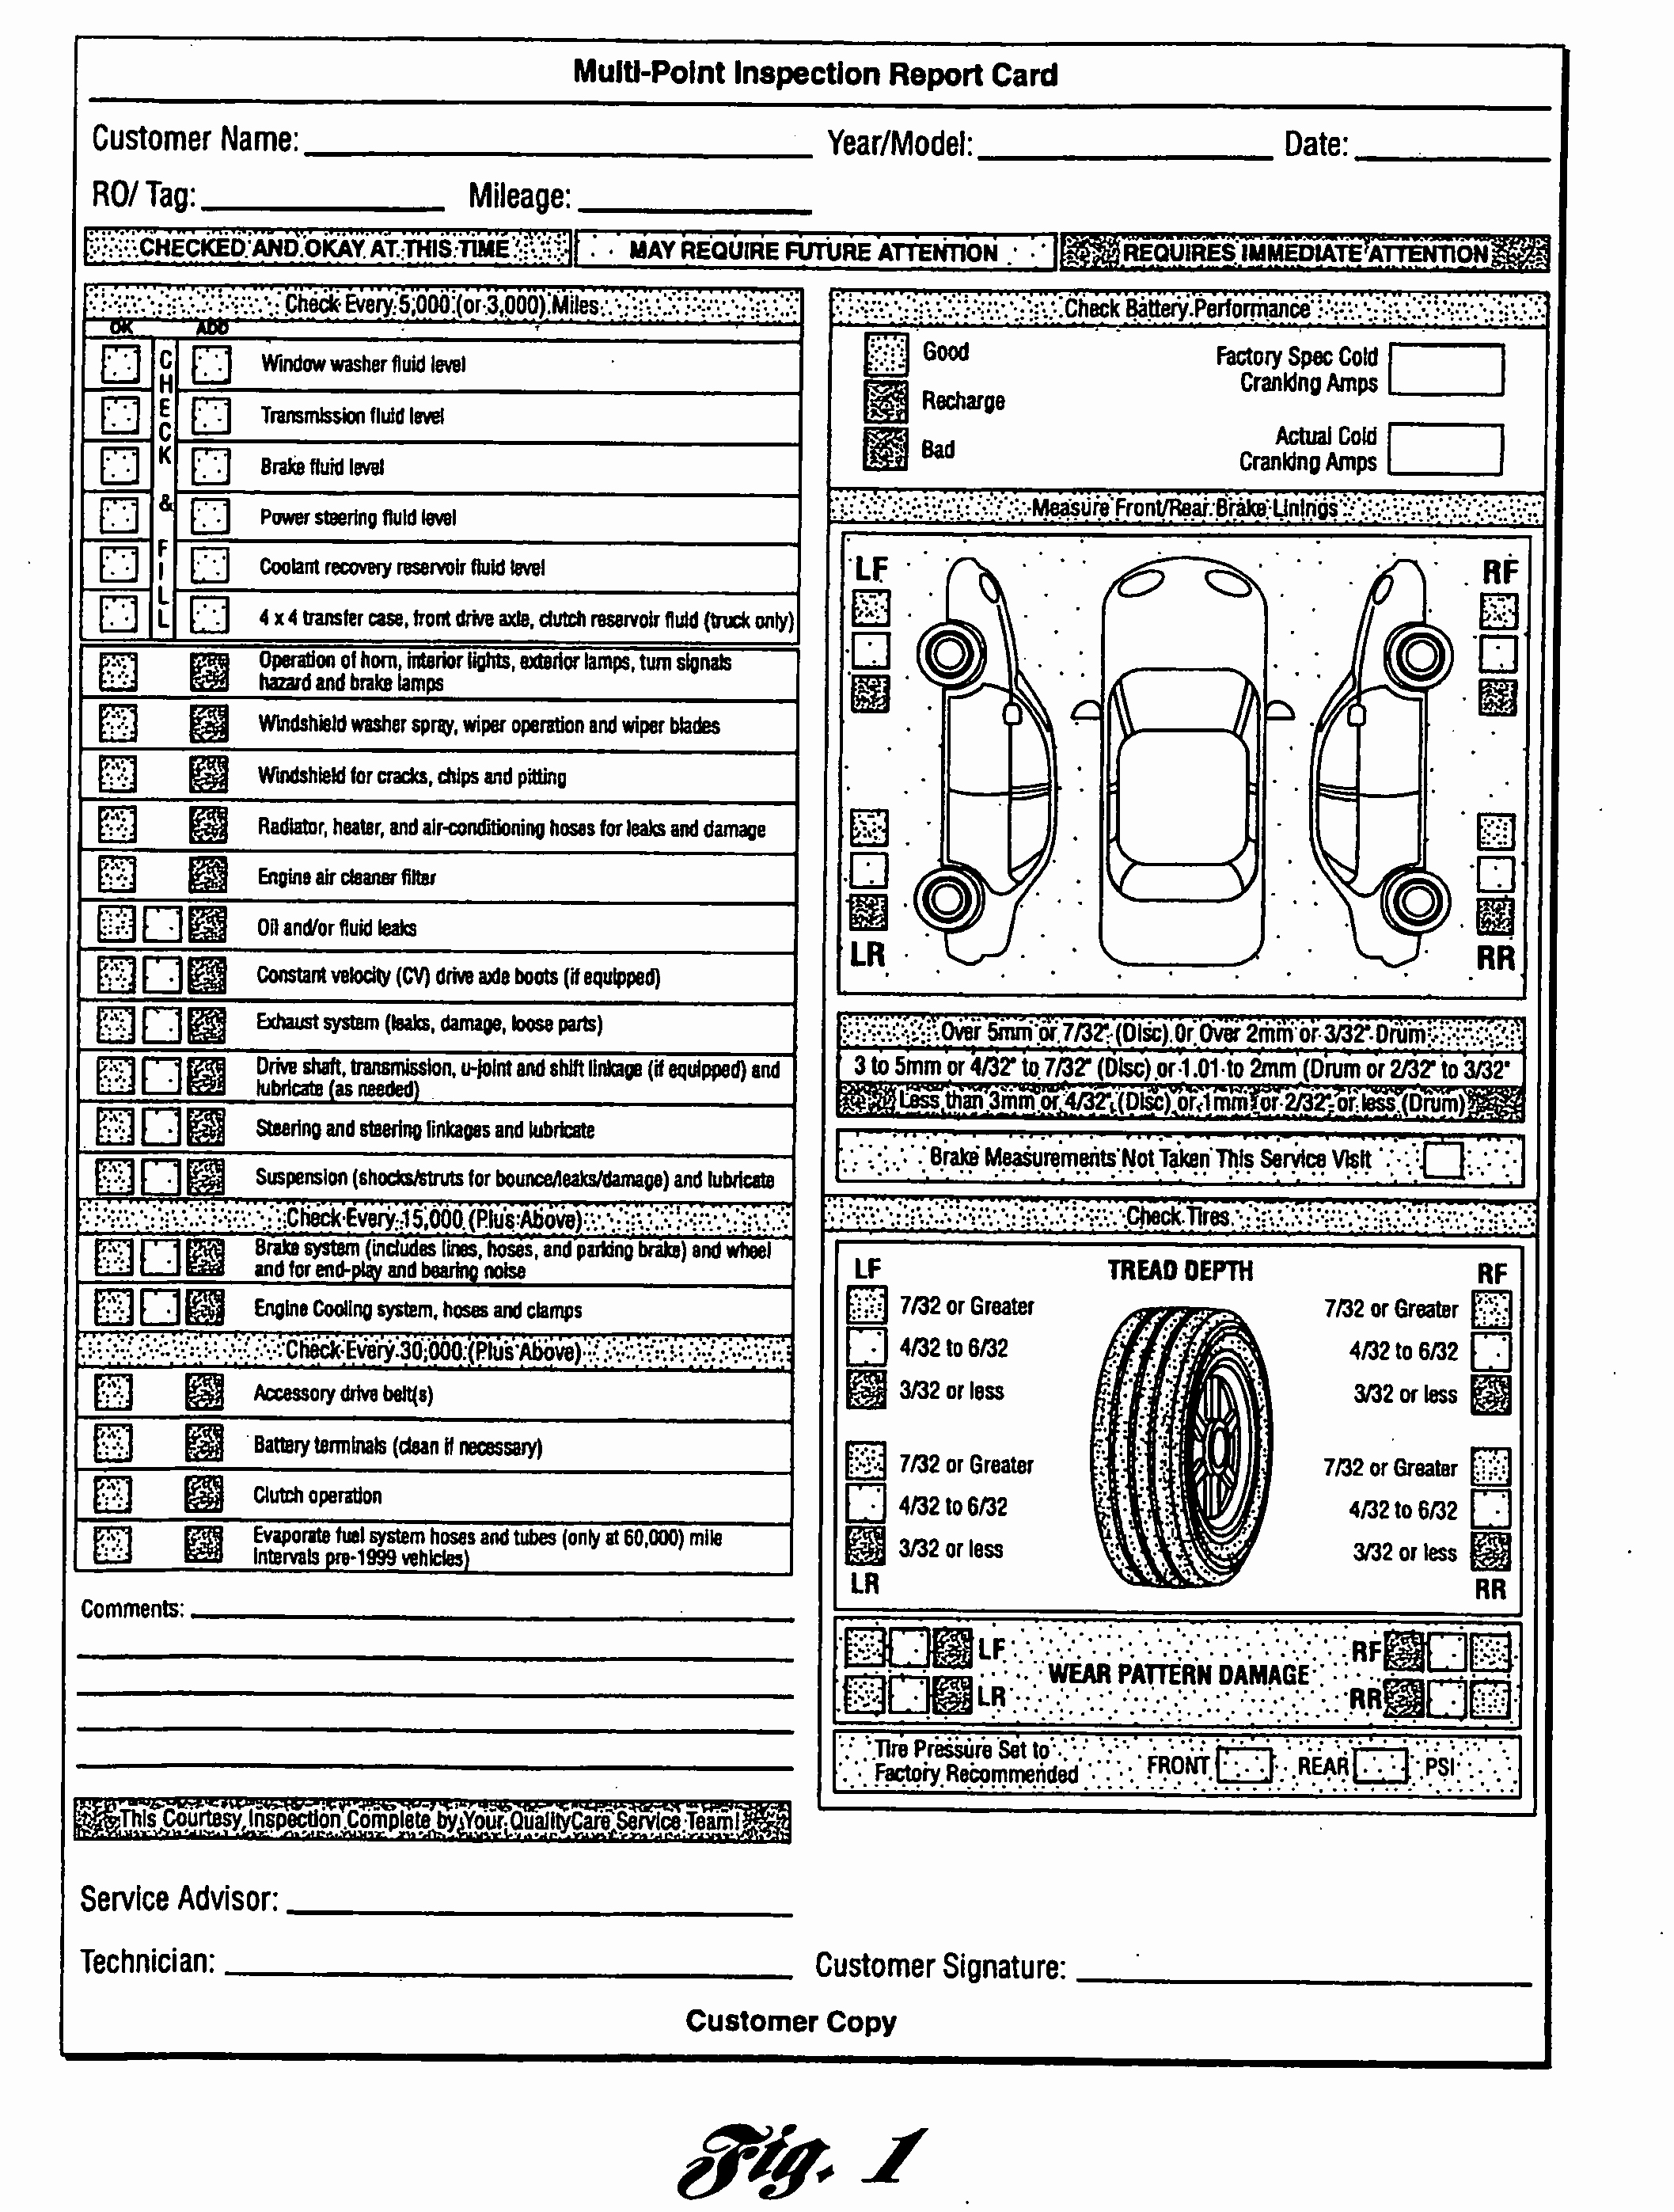 Vehicle Damage Report Template Excel Inspirational Multi Point Inspection Report Card as Re Mended by ford